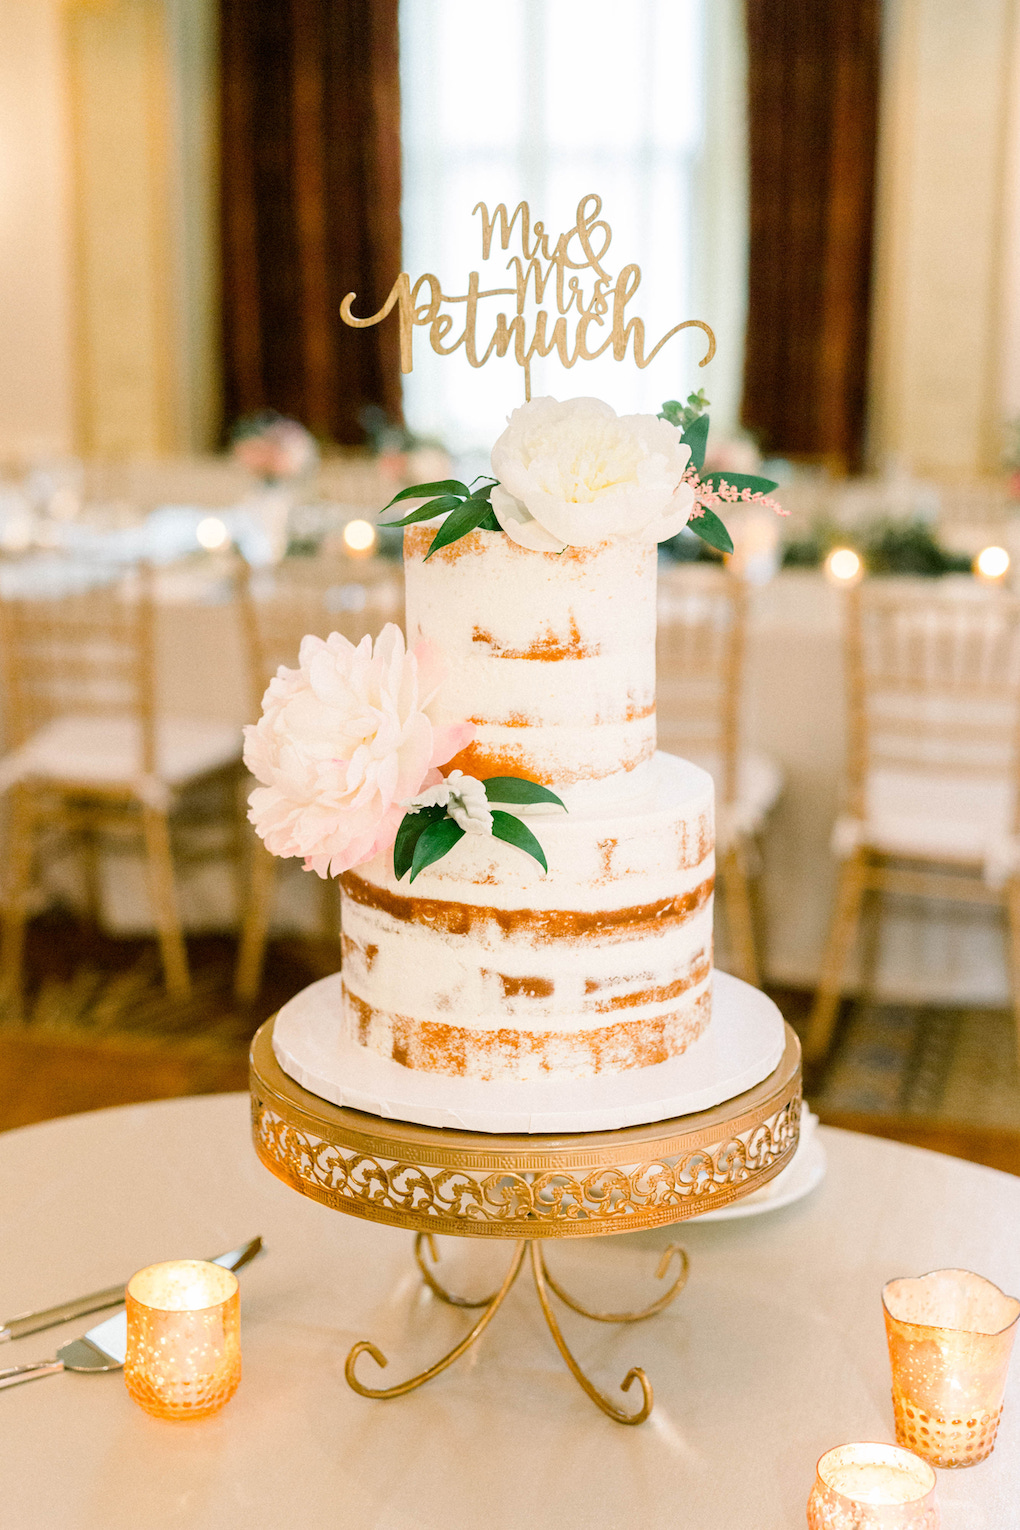 Semi-naked wedding cake: Romantic Fairytale wedding at the Omni William Penn in Pittsburgh, PA planned by Exhale Events. Find more wedding inspiration at exhale-events.com!